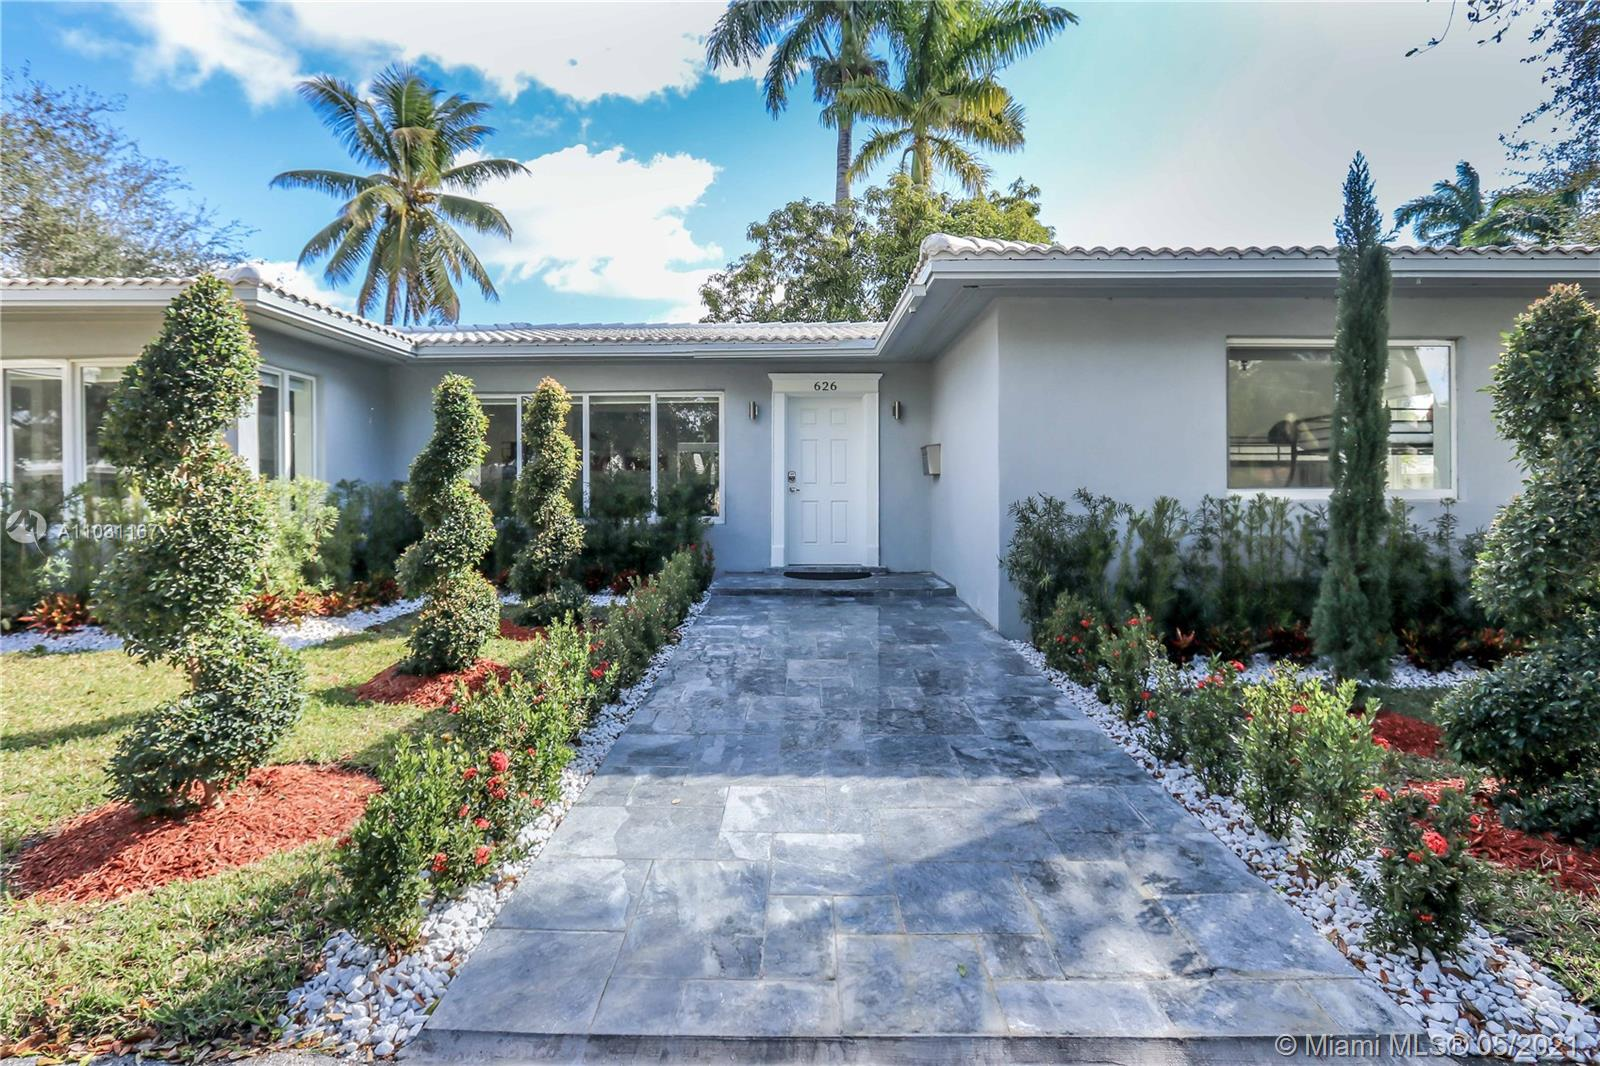 Hollywood Lakes - 626 S 13th Ave, Hollywood, FL 33019